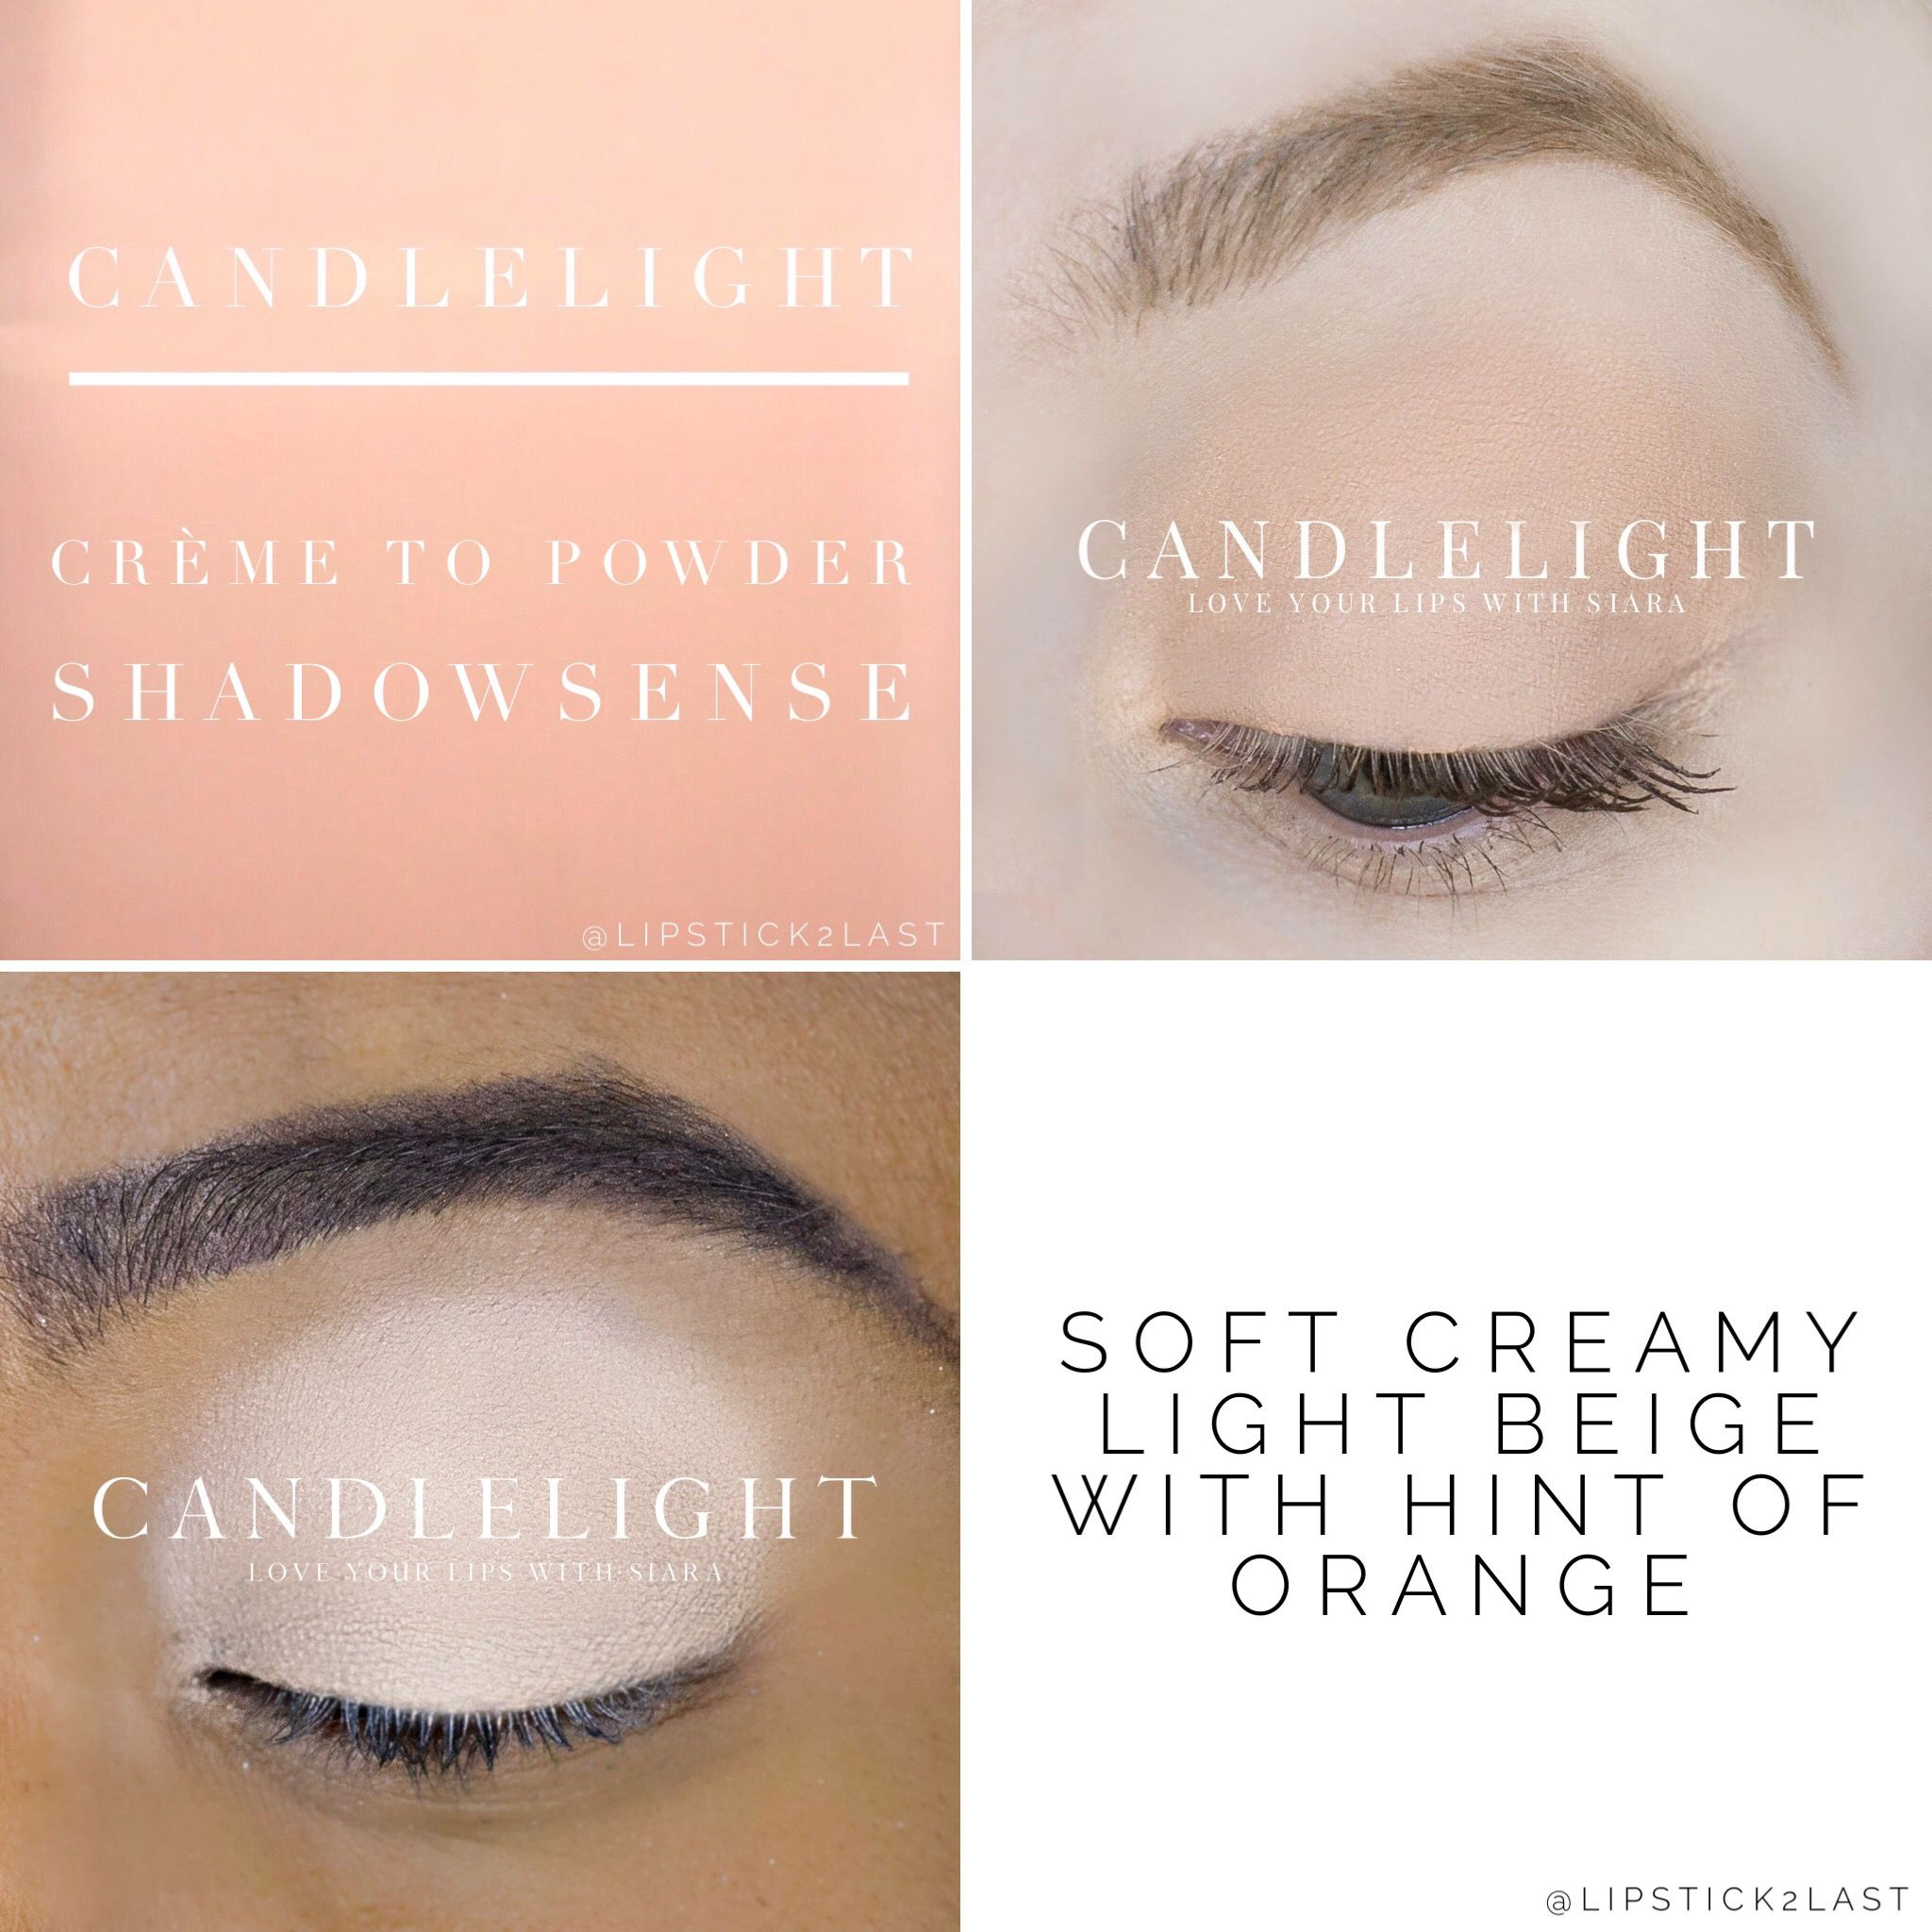 Candlelight Shadowsense. Creamy Peach Eyeshadow. Anti Aging Eyeshadow.  Shadowsense Color.